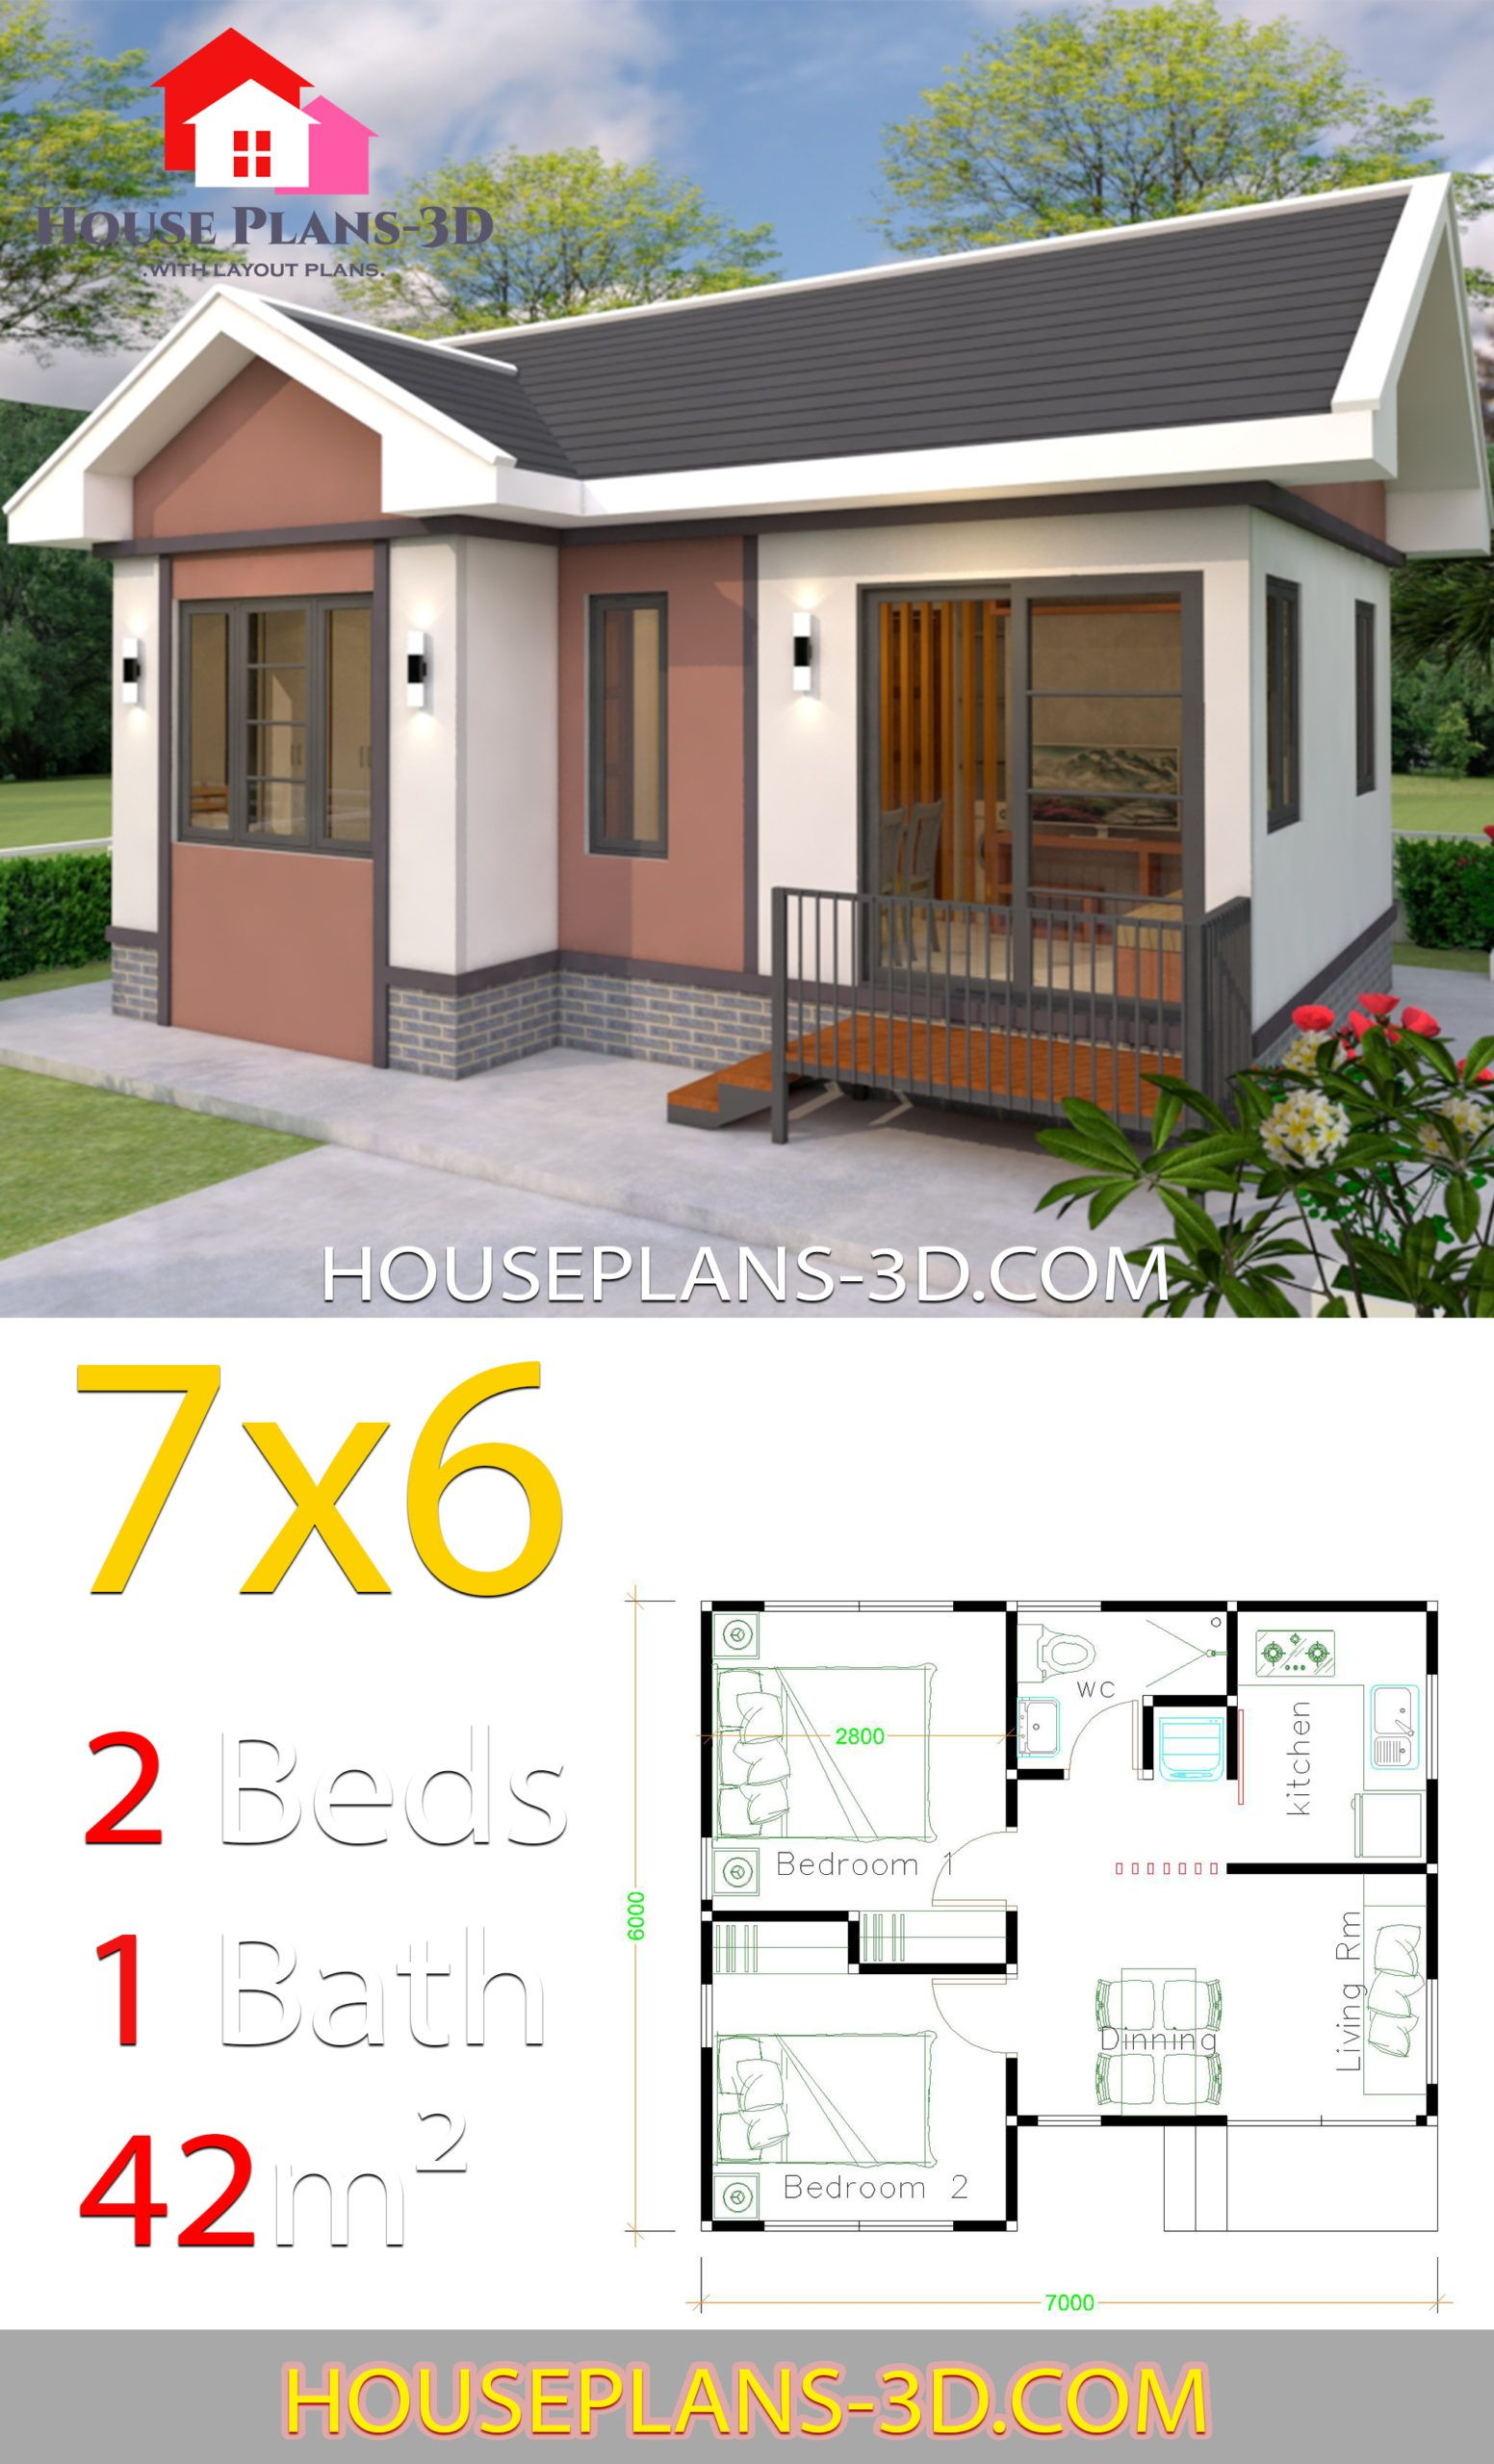 House Plans Design 7x6 With 2 Bedrooms Gable Roof In 2020 House